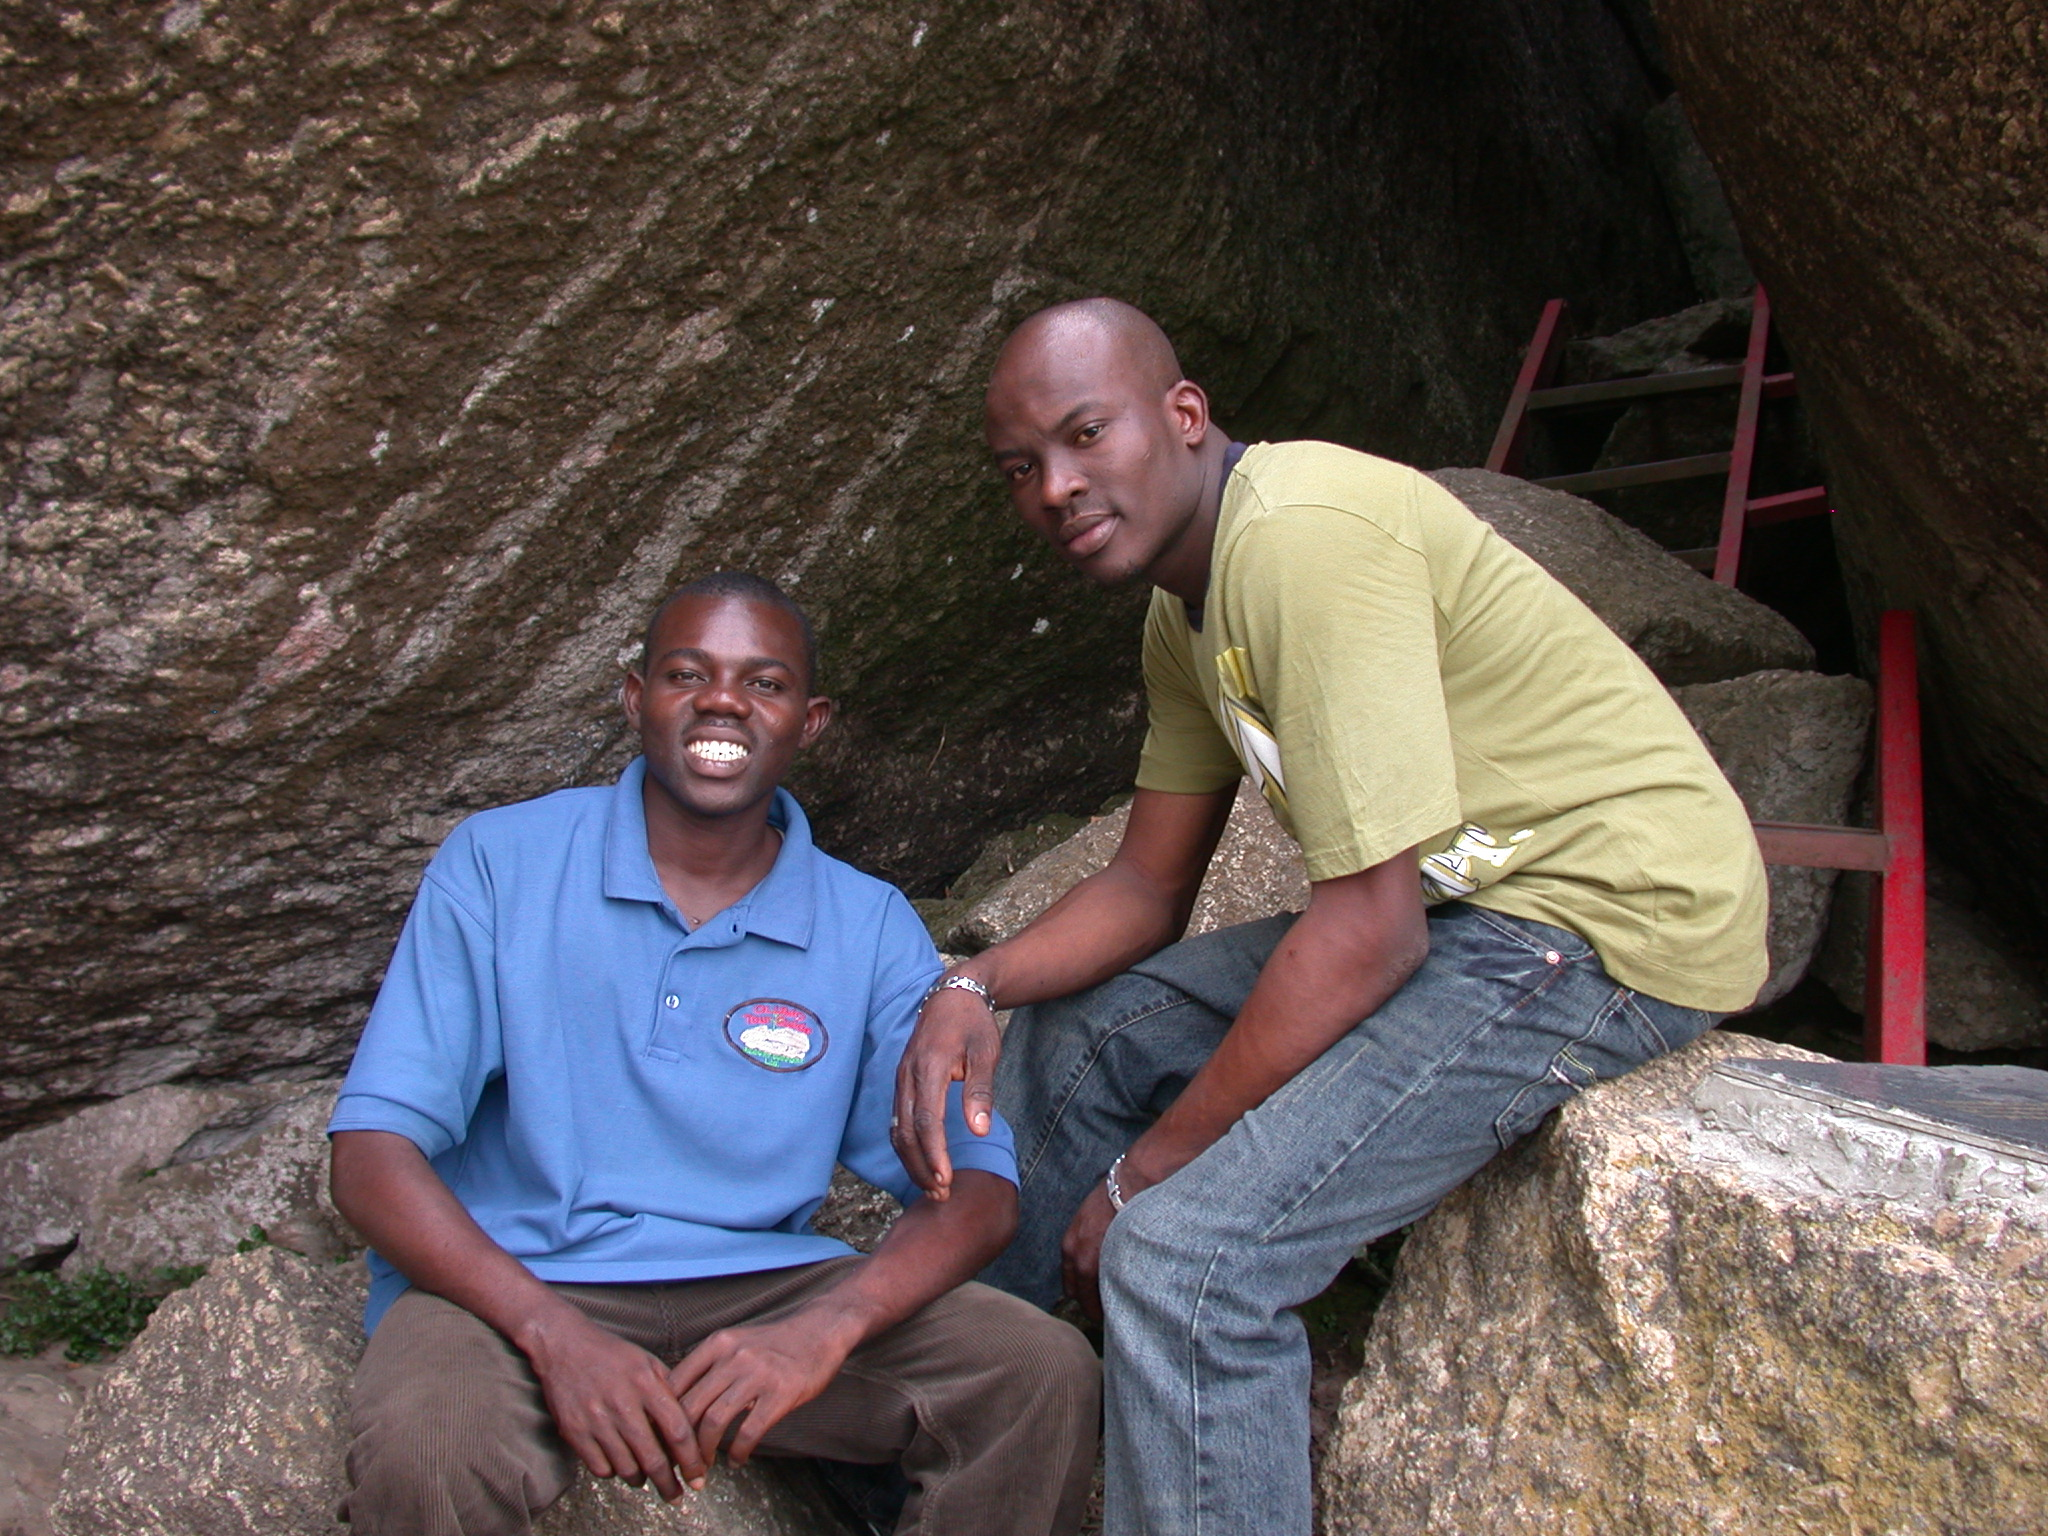 Guide Named Praise Ademola Oladepupo and Guide and Manager From Hotel in Town, Olumo Rock, Abeokuta, Nigeria